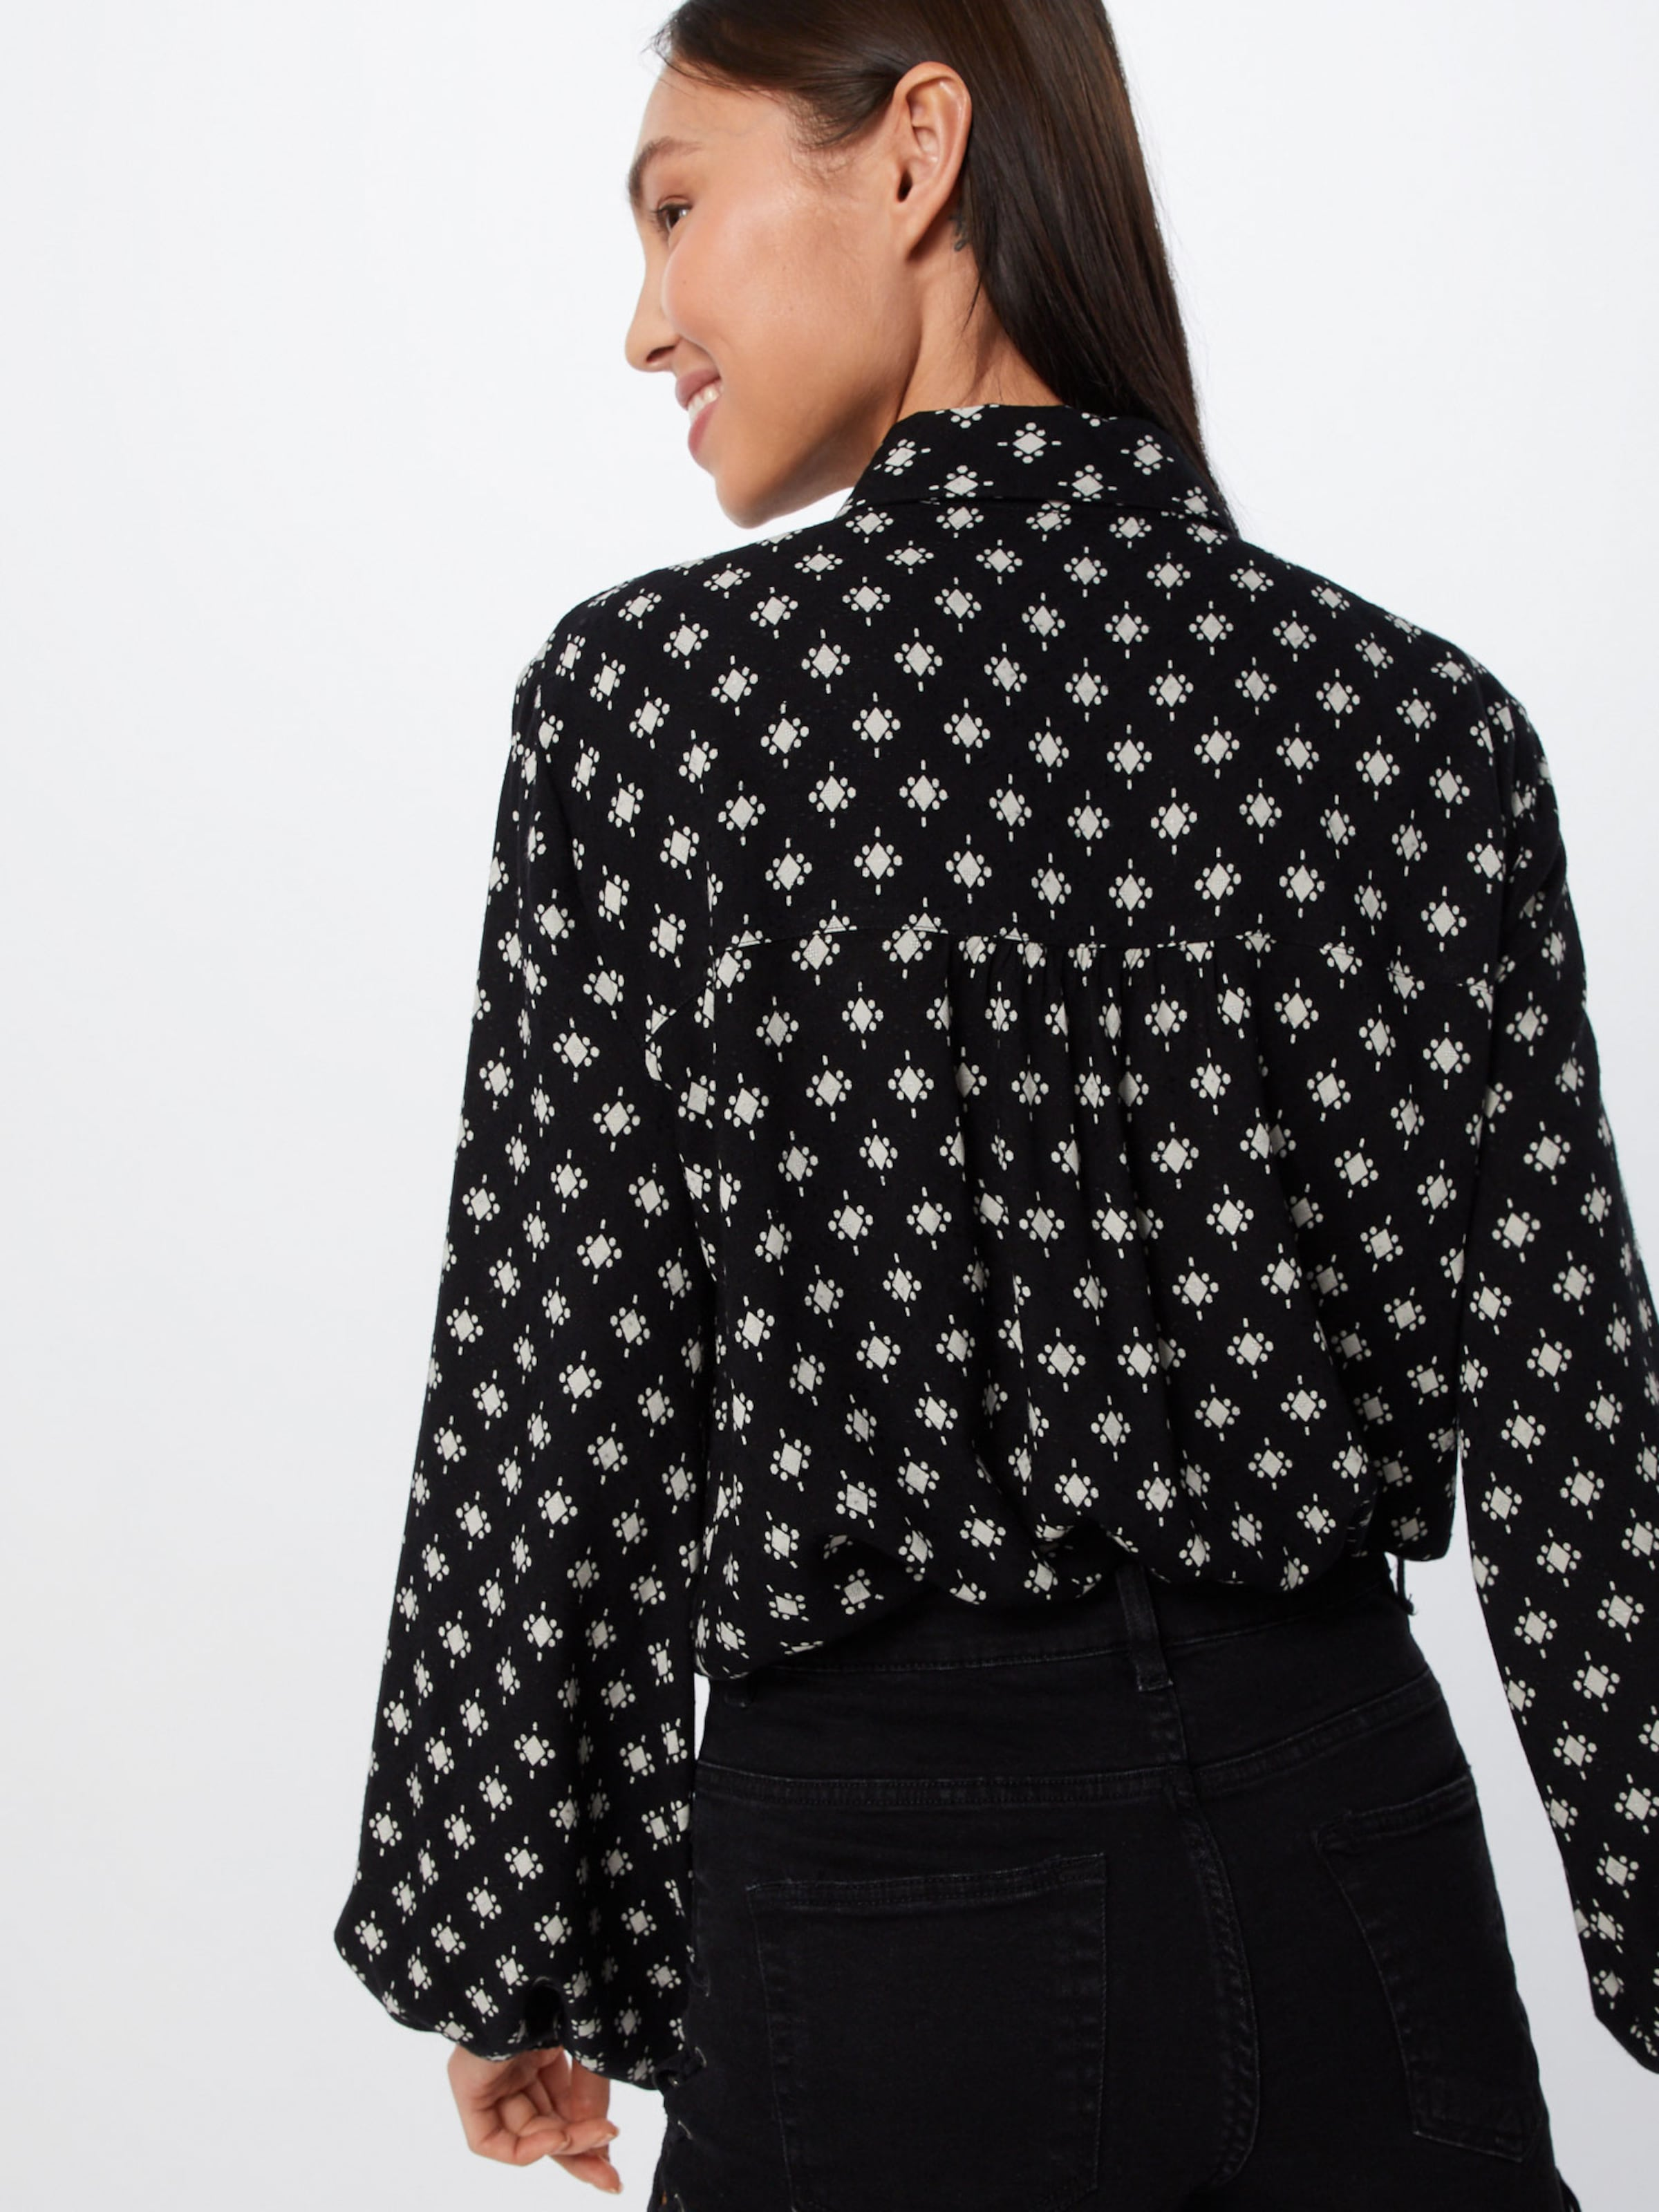 Free People Bluse In 'willow' Schwarz y6gfb7